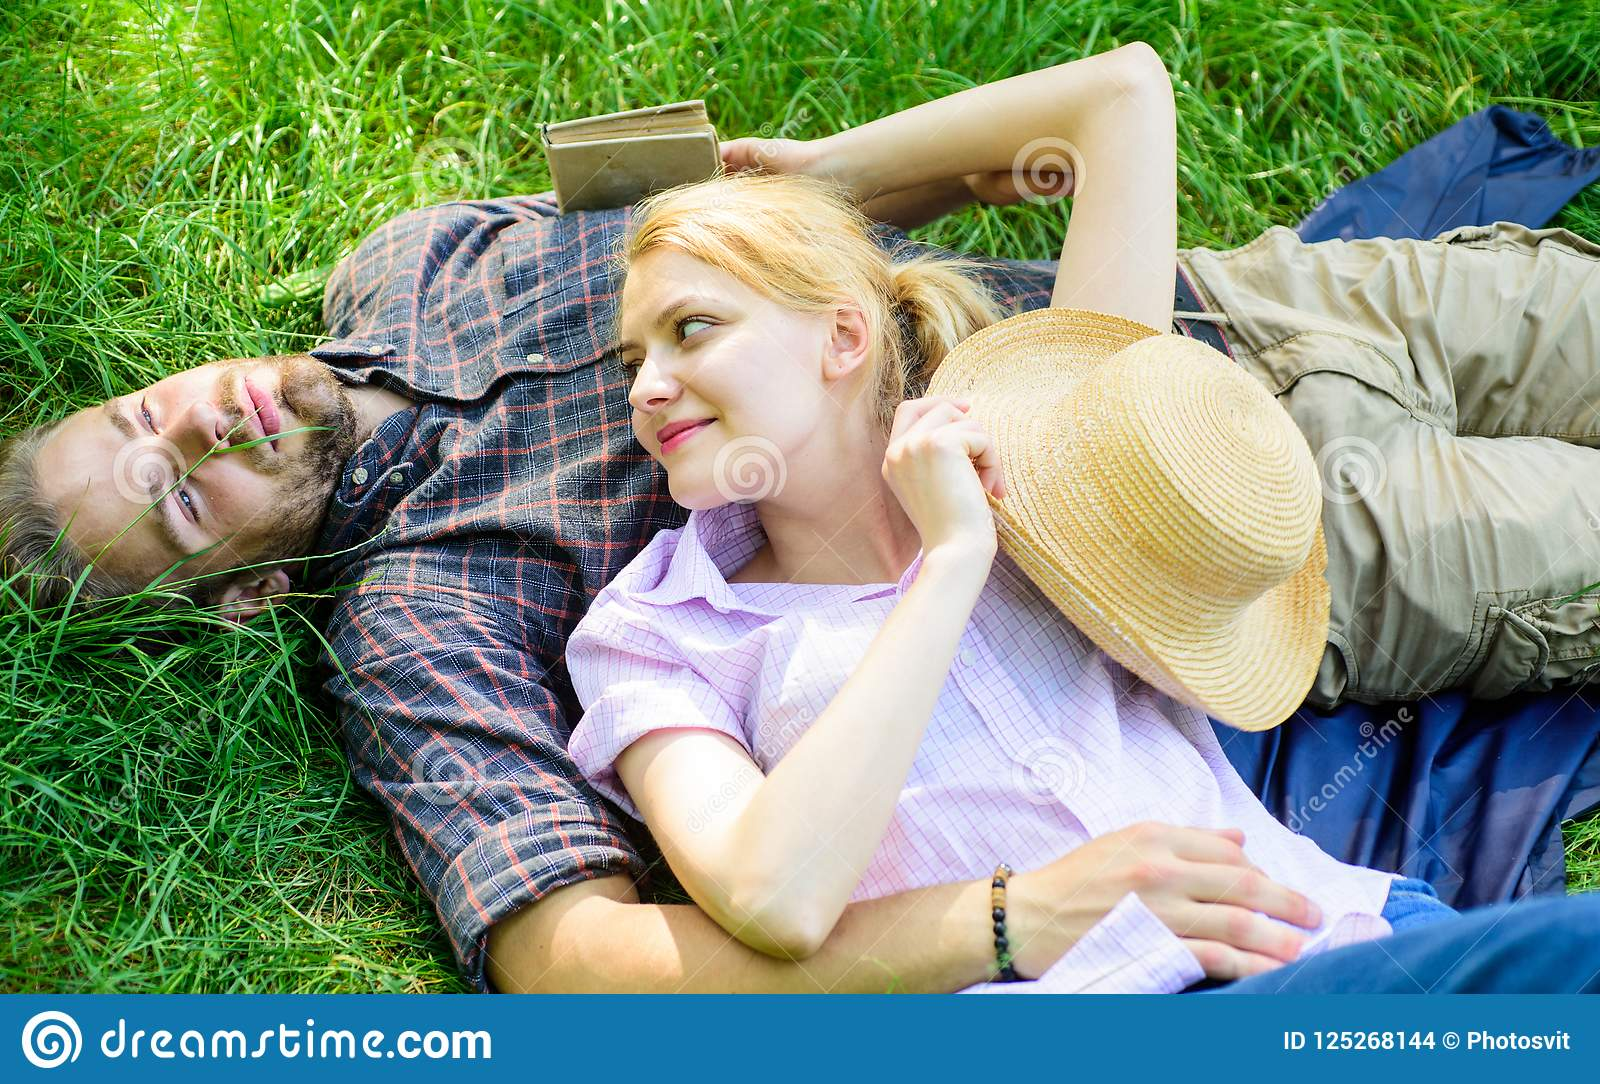 Guy and girl dreamy relaxed enjoy tranquility nature. Couple in love relaxing outdoors. Man unshaven and girl relax on